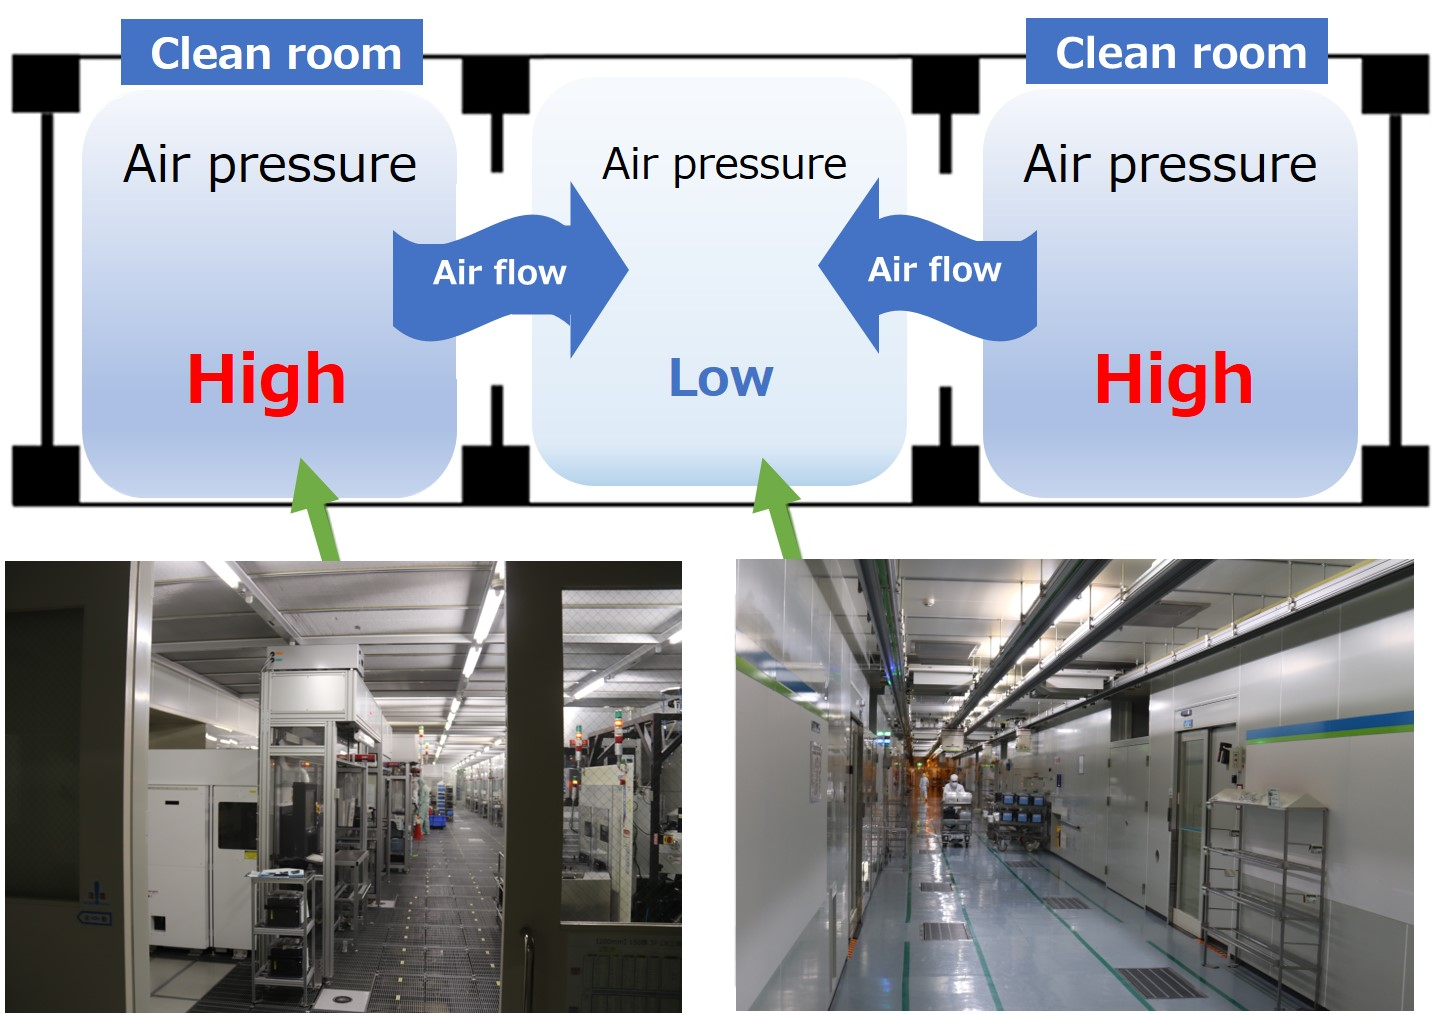 Areas where equipment is located are positively pressure controlled so that the air pressure is higher than in adjacent corridors, even though they are in the same clean room.